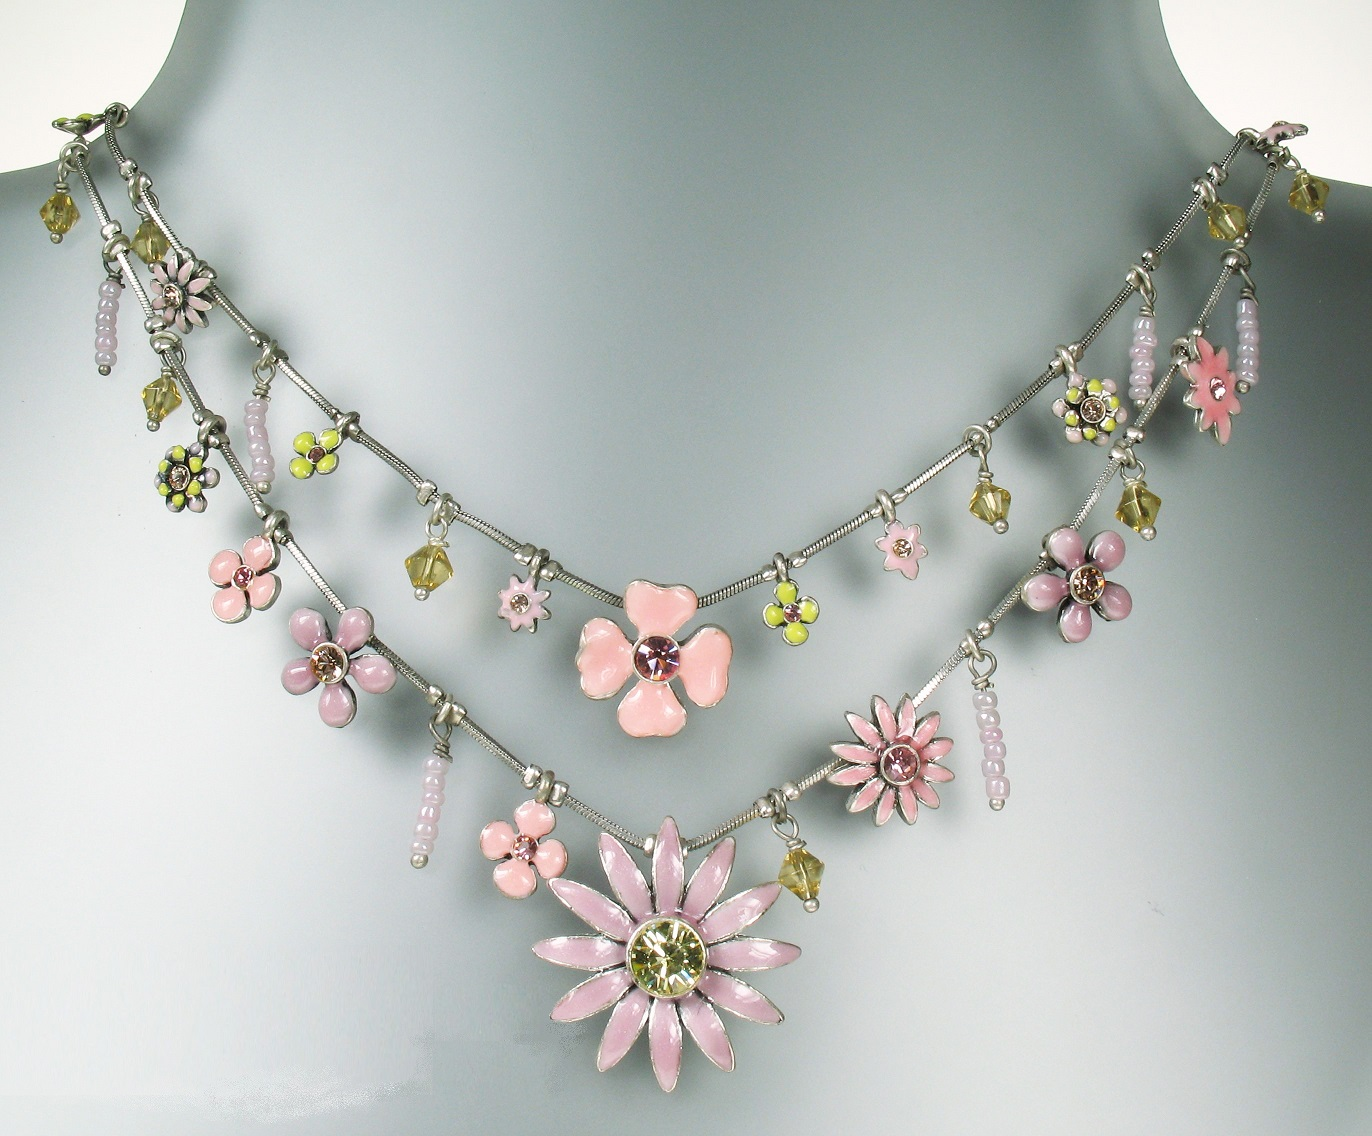 PILGRIM Daisy - Double Strand Necklace - Oxidised Silver Plate & Pastel Pink, Lilac & Yellow Accents BNWT